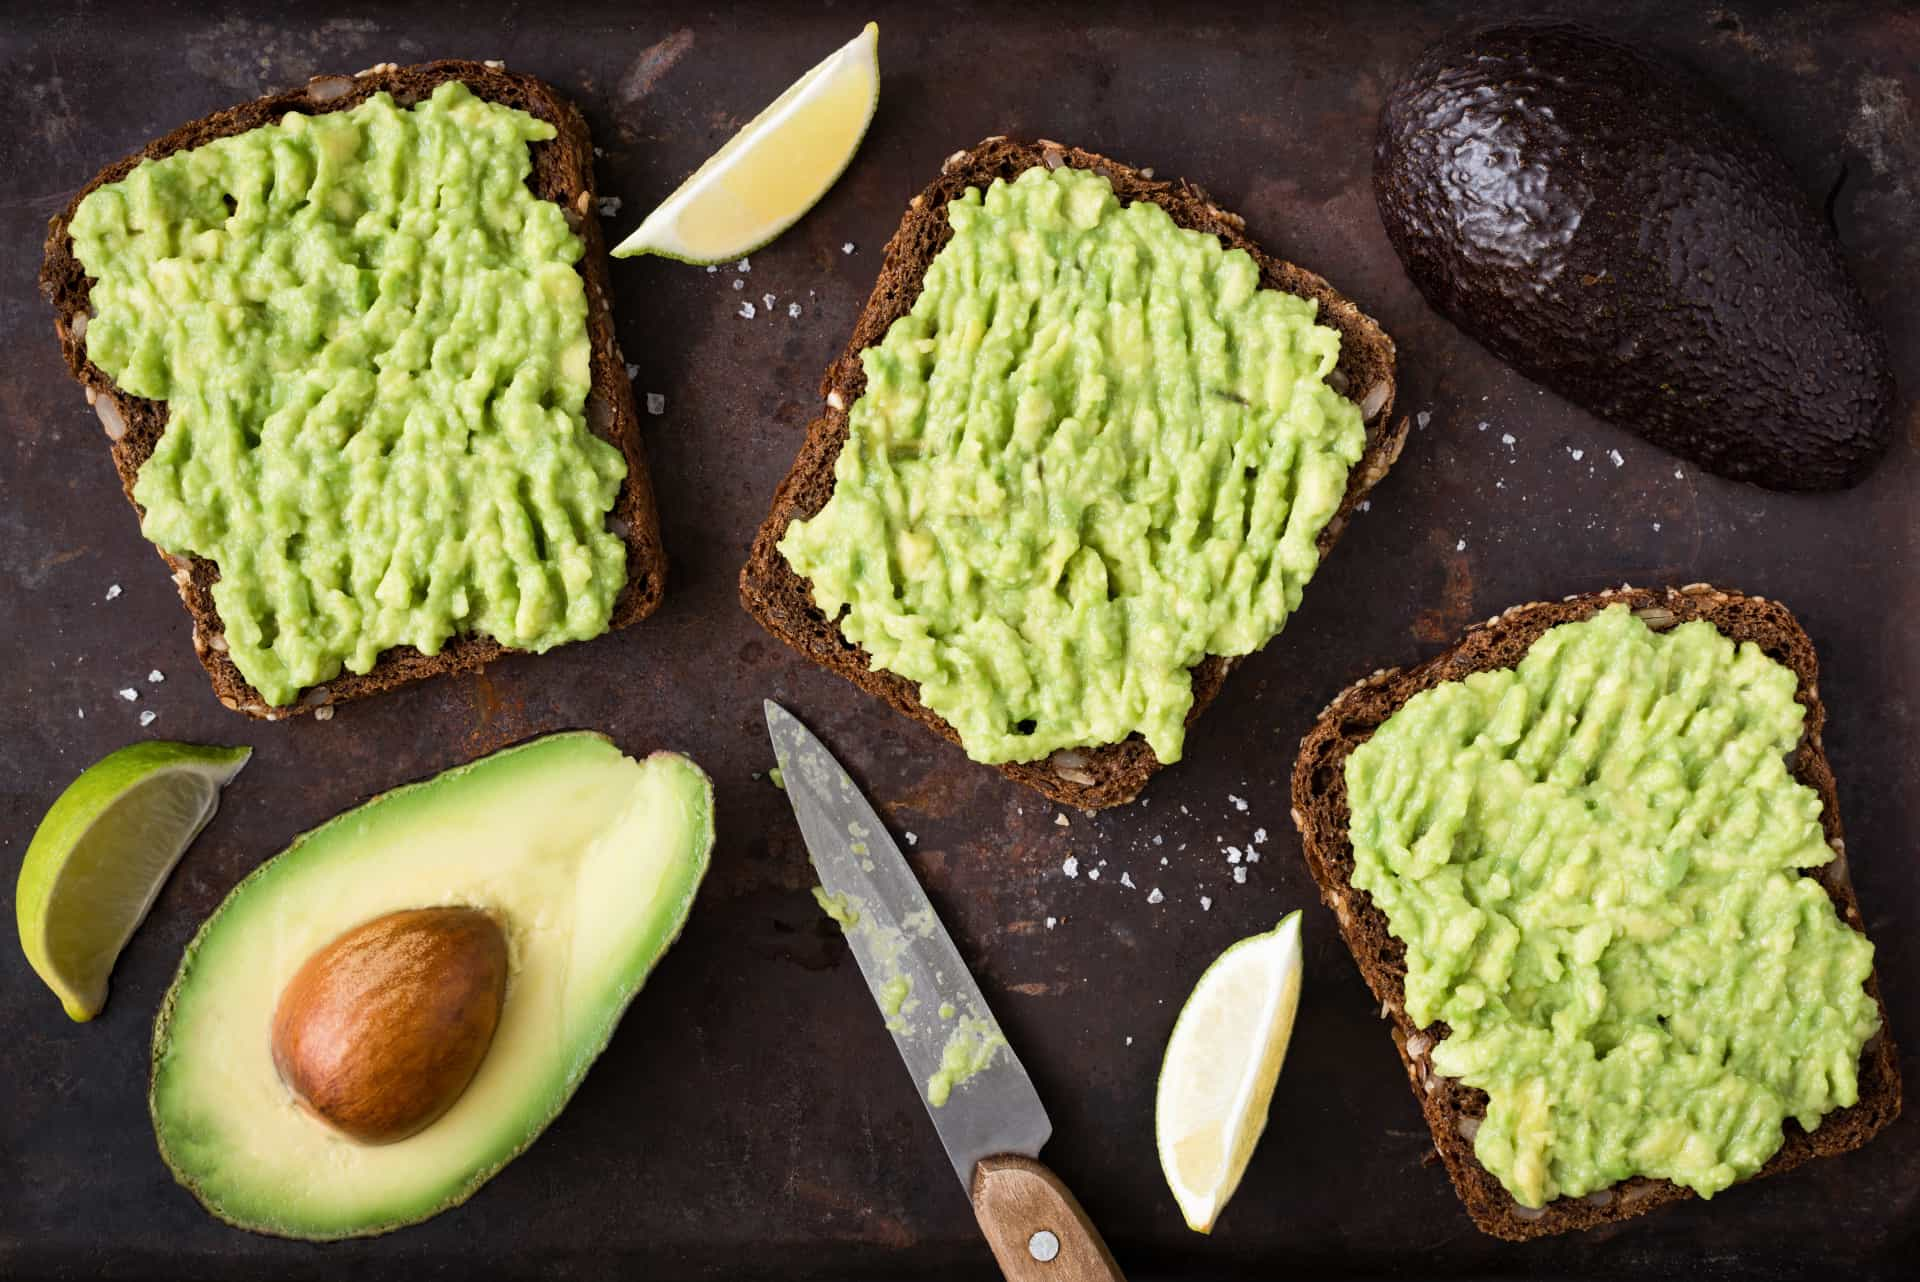 Quick and easy avocado snacks for busy people